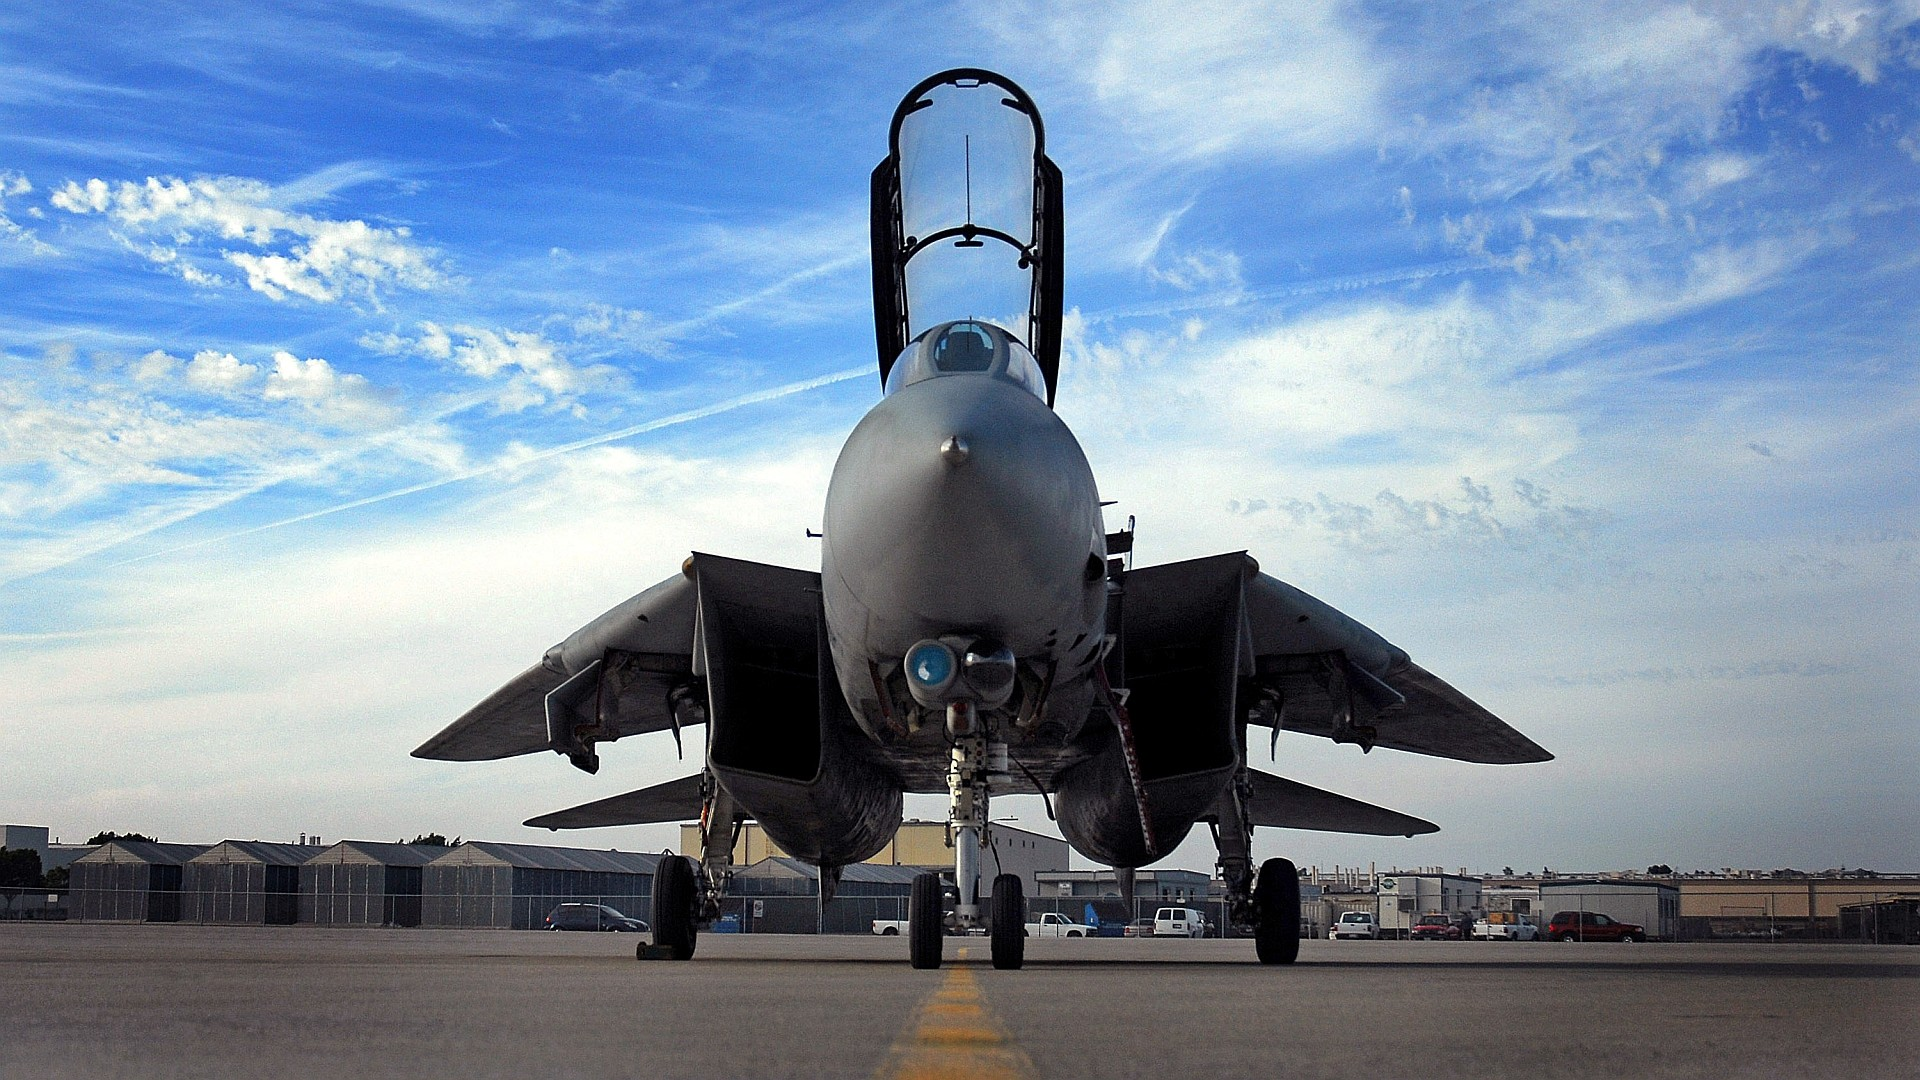 1920x1080  HD wallpaper of a F-14 Tomcat on the tarmac. The widescreen  version (2560x1600) of this #wallpaper can be found at  http://i.imgur.com/cK716ar.jpg ...